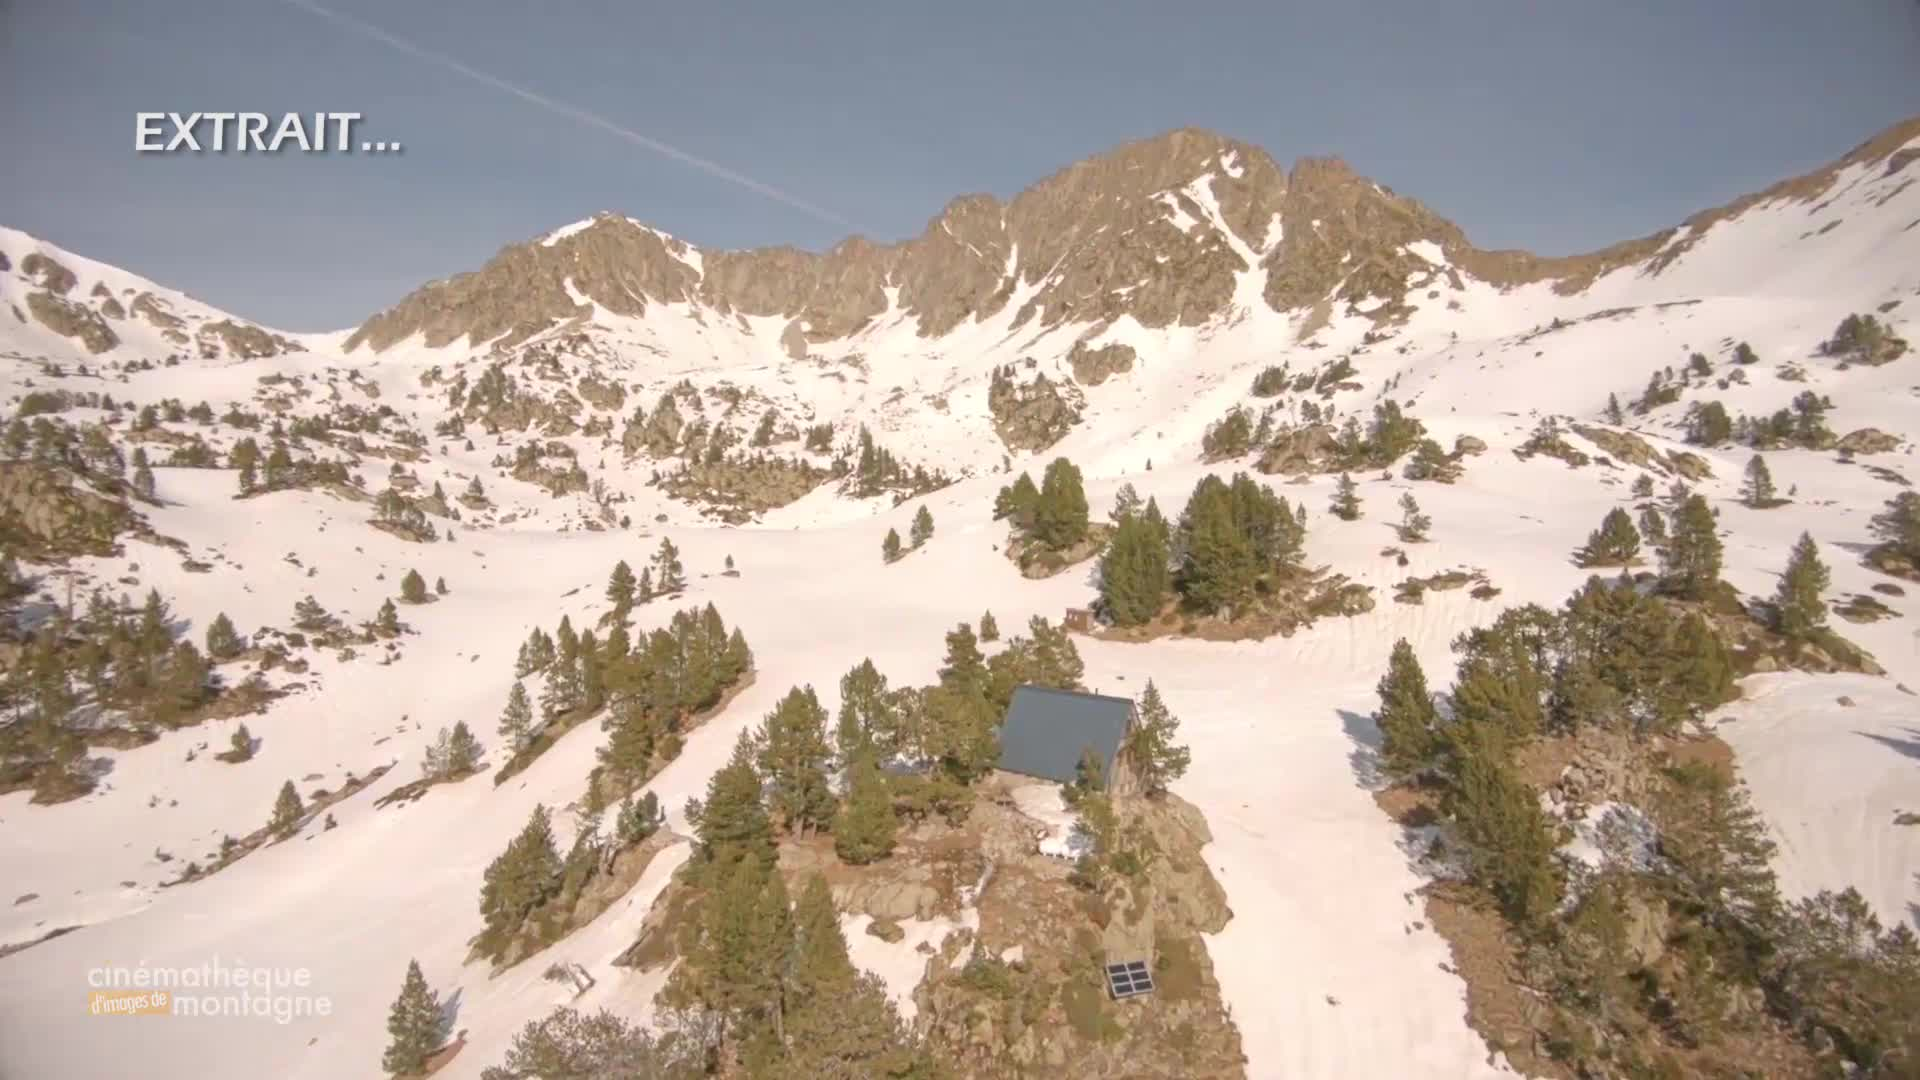 Pyrenean backcountry